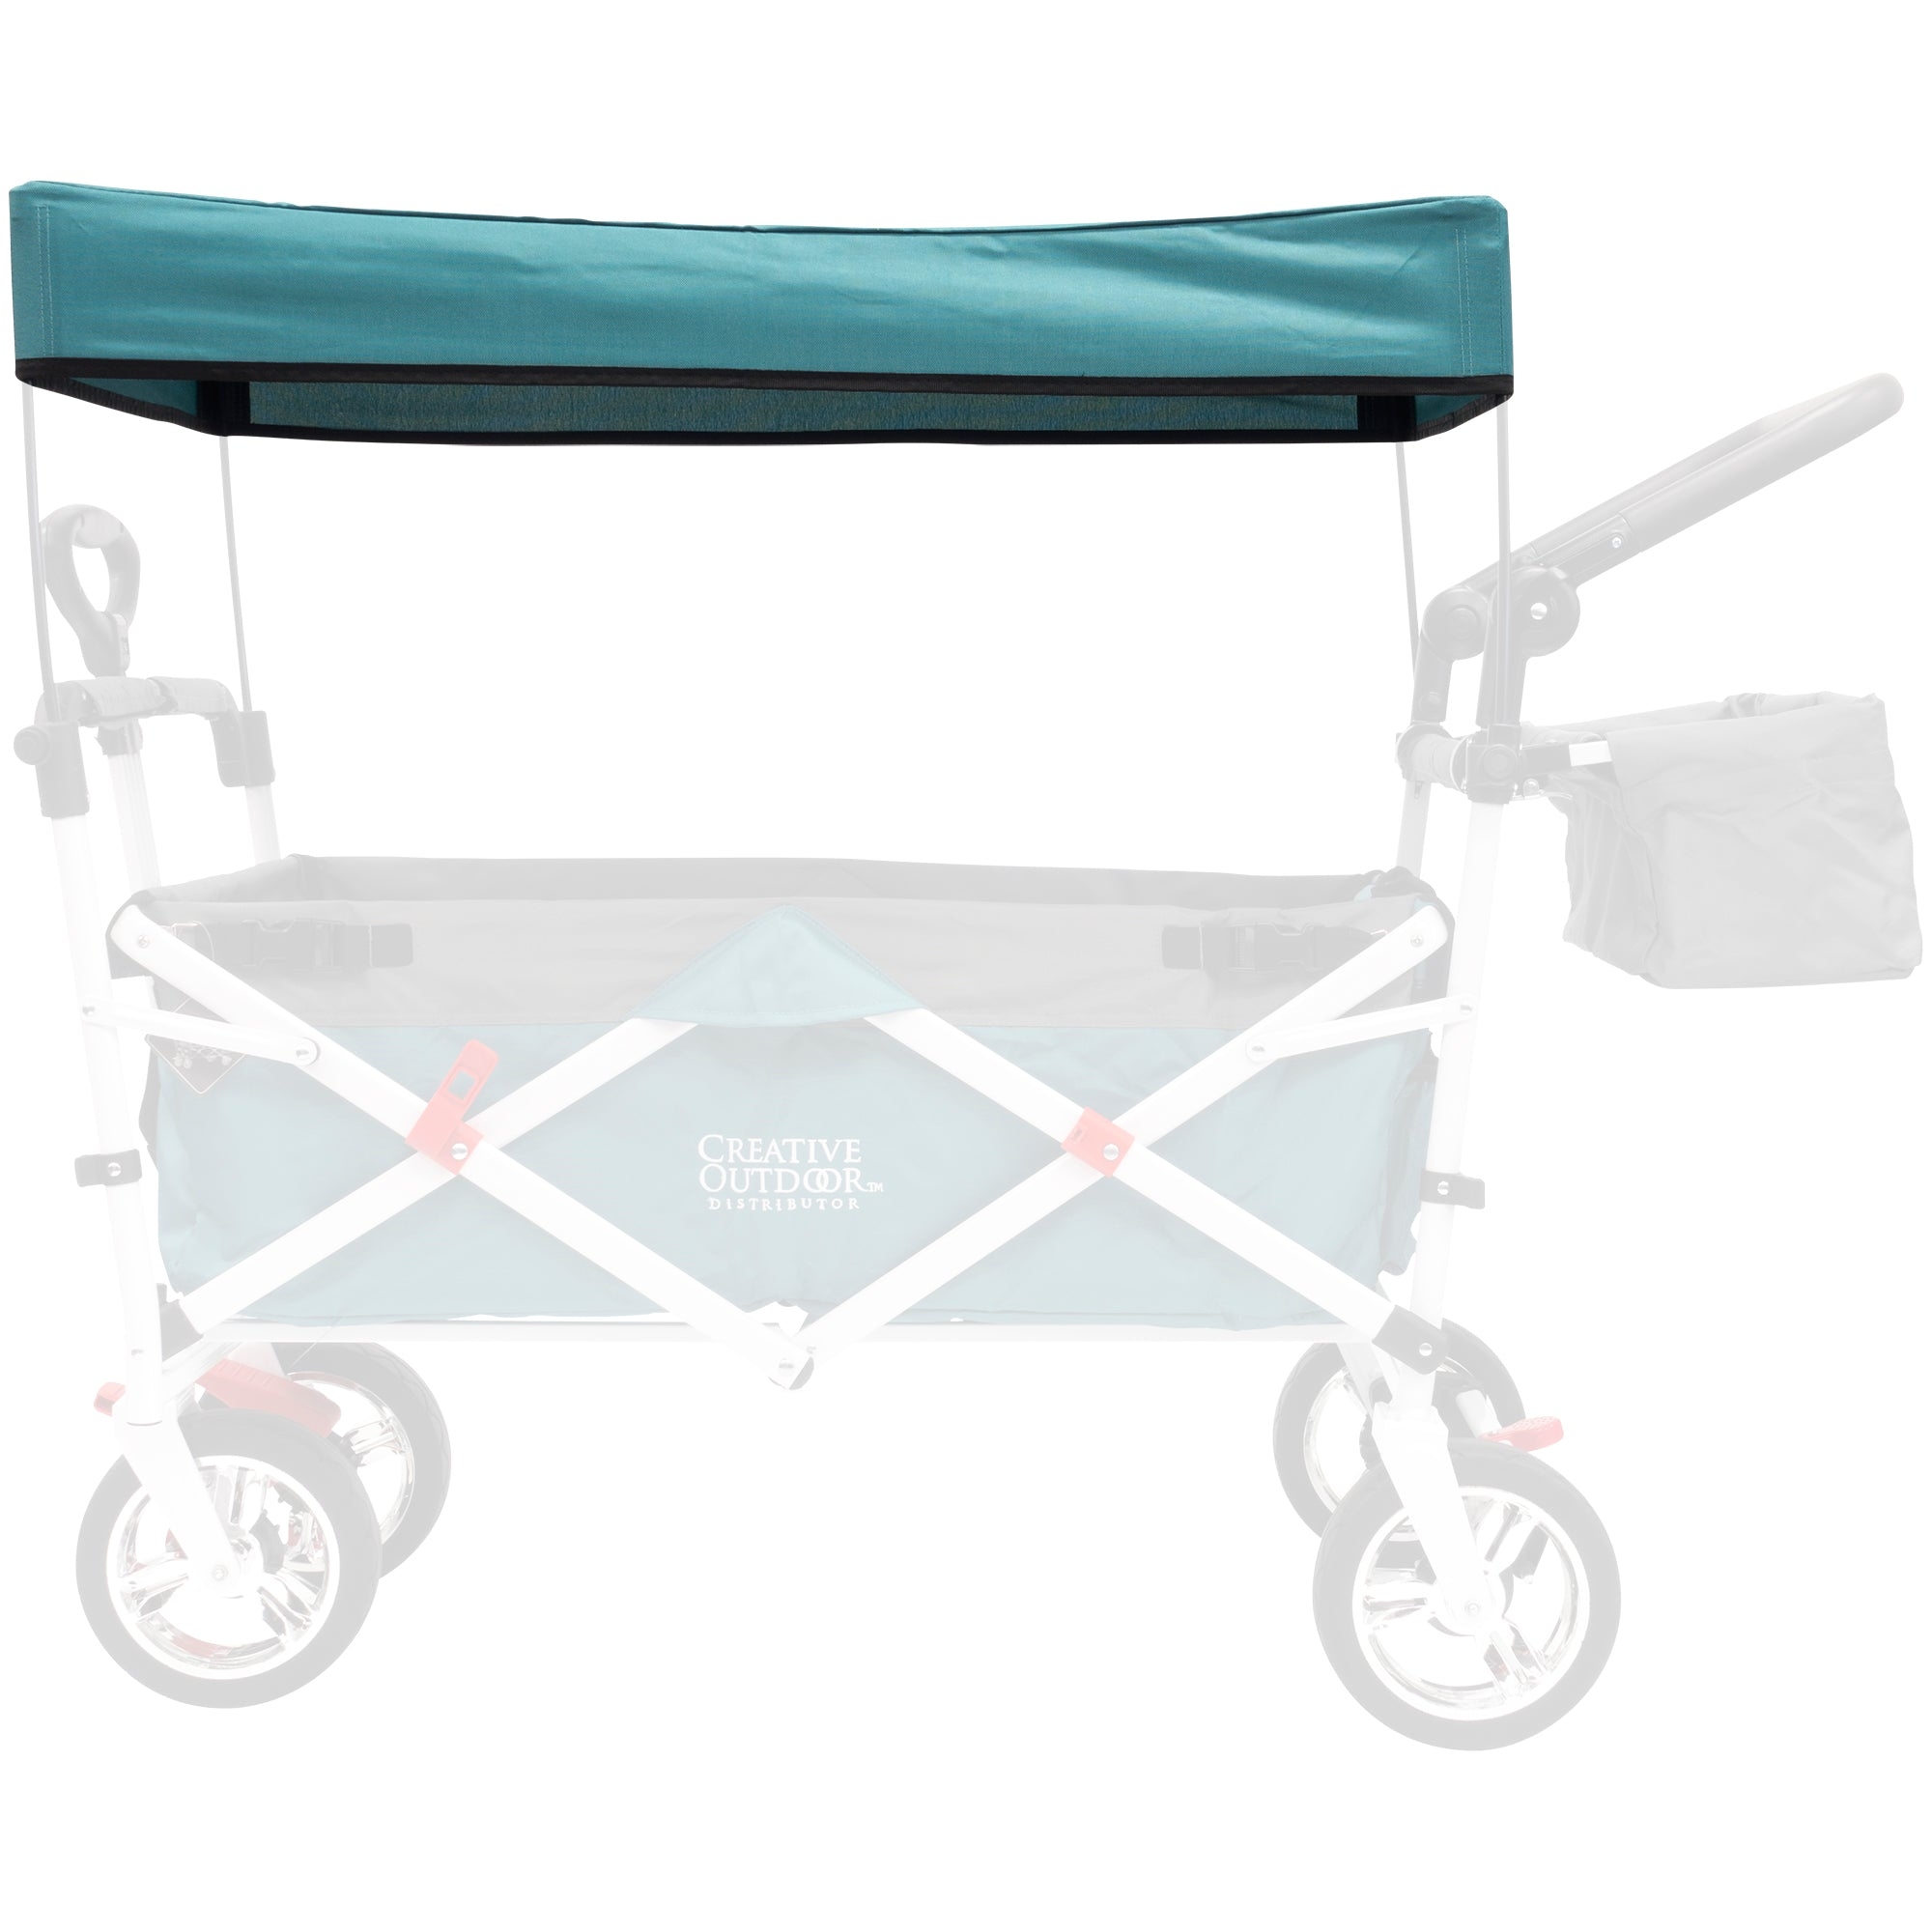 Silver Series Push Pull Folding Wagon Teal Replacement Canopy - Teal